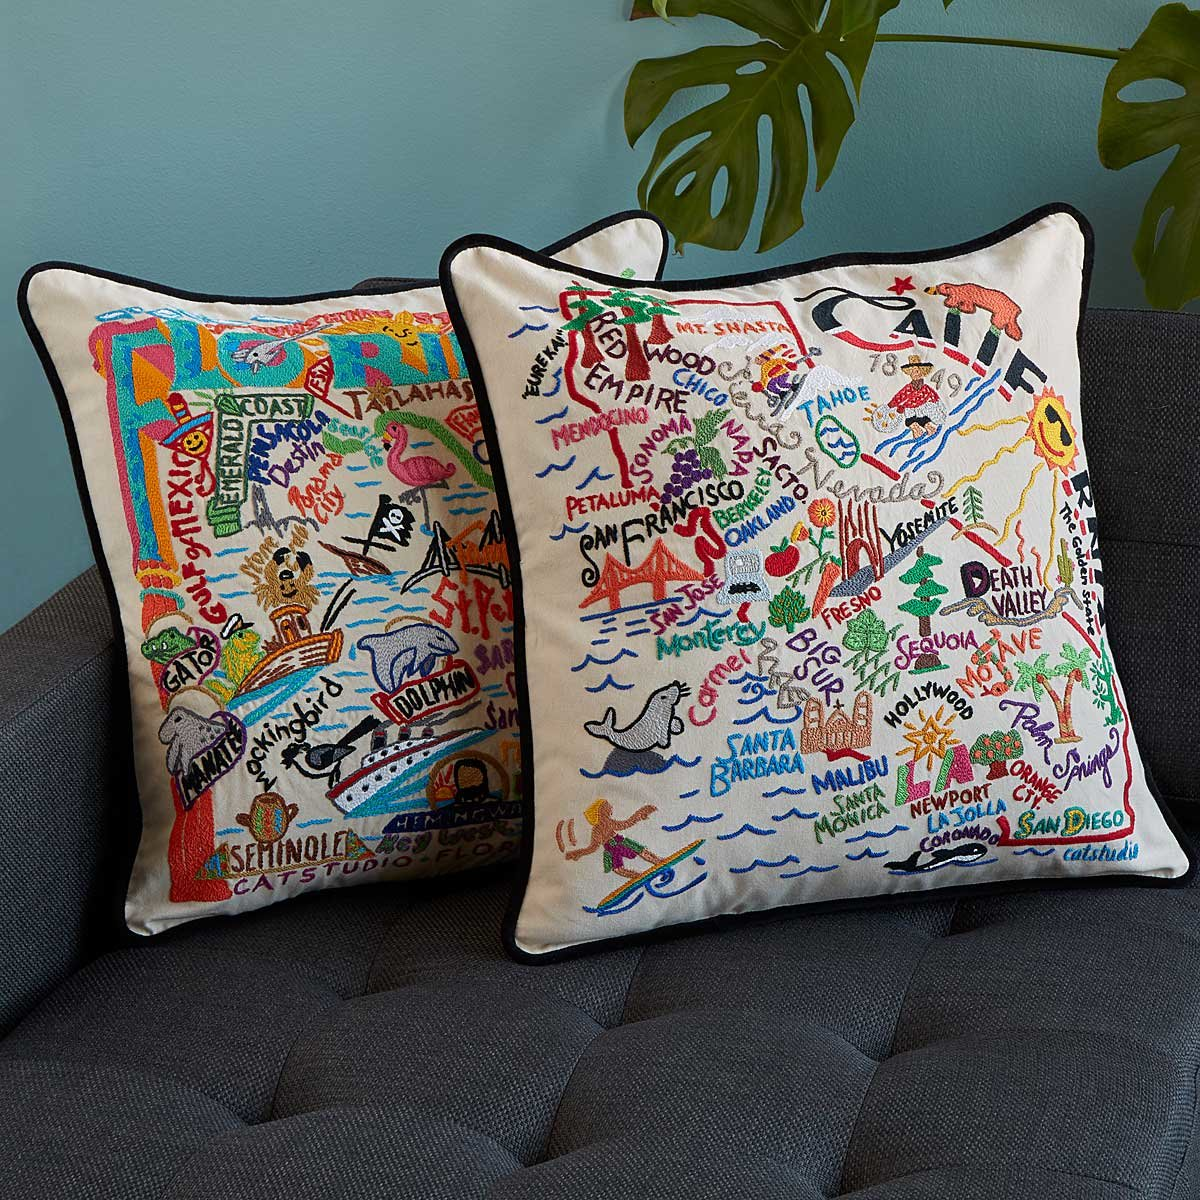 Hand Embroidered State Pillows New York Pillow Texas Uncommongoods